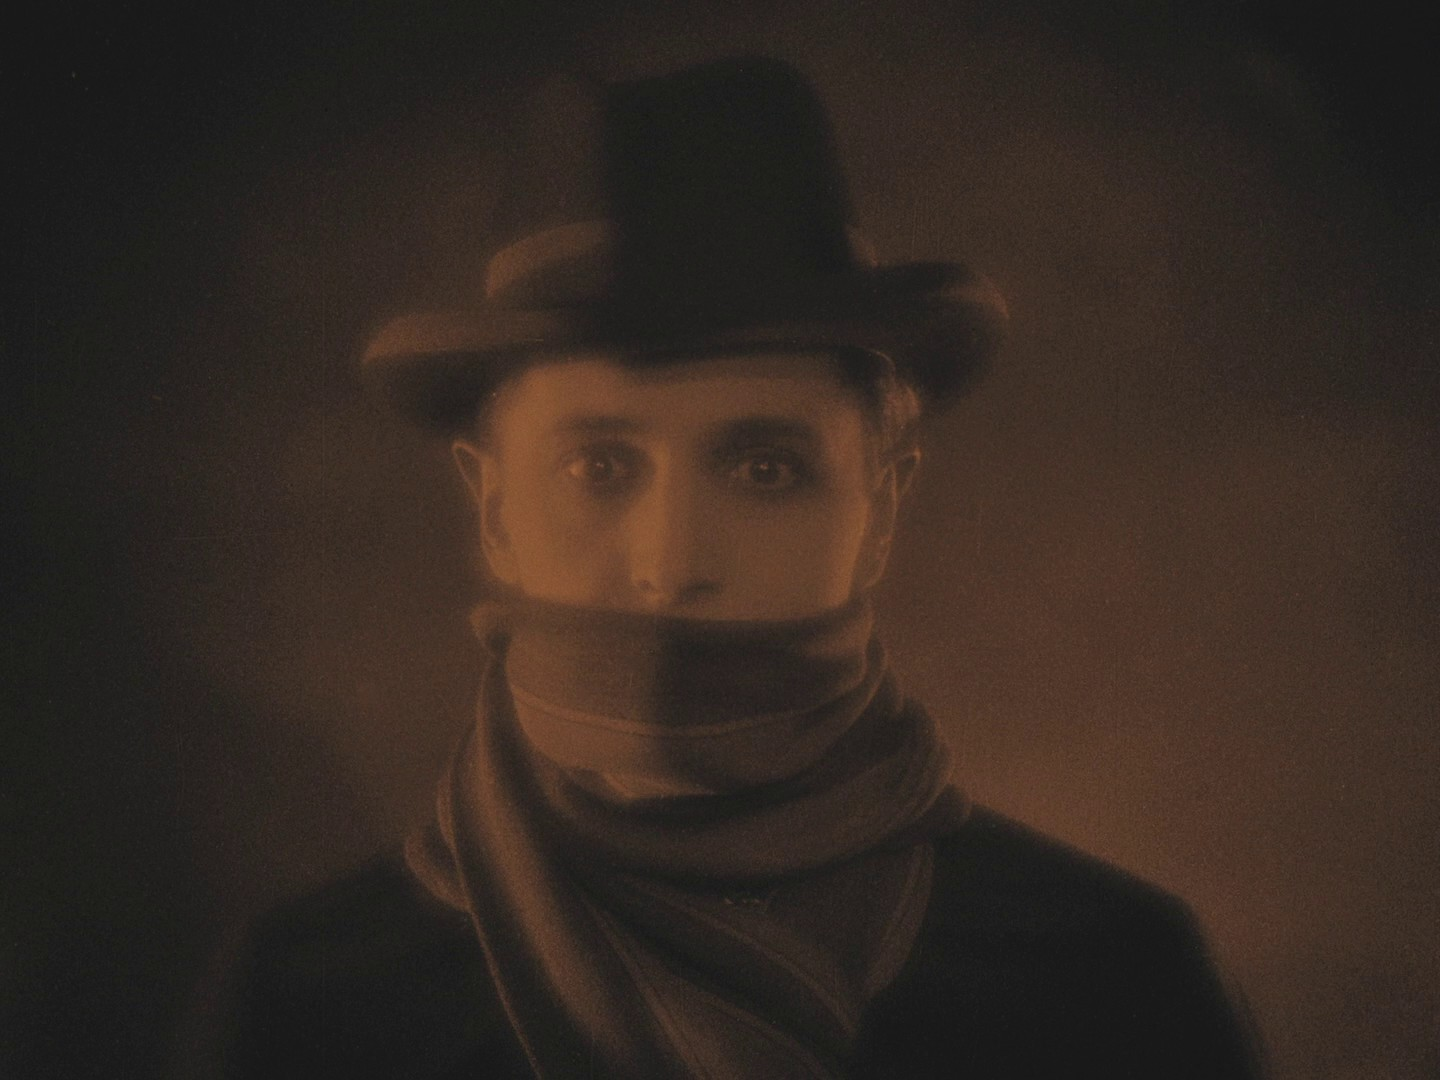 Ivor Novello in The Lodger (1926, dir. Alfred Hitchcock) French Elephant Films Blu-ray screenshot